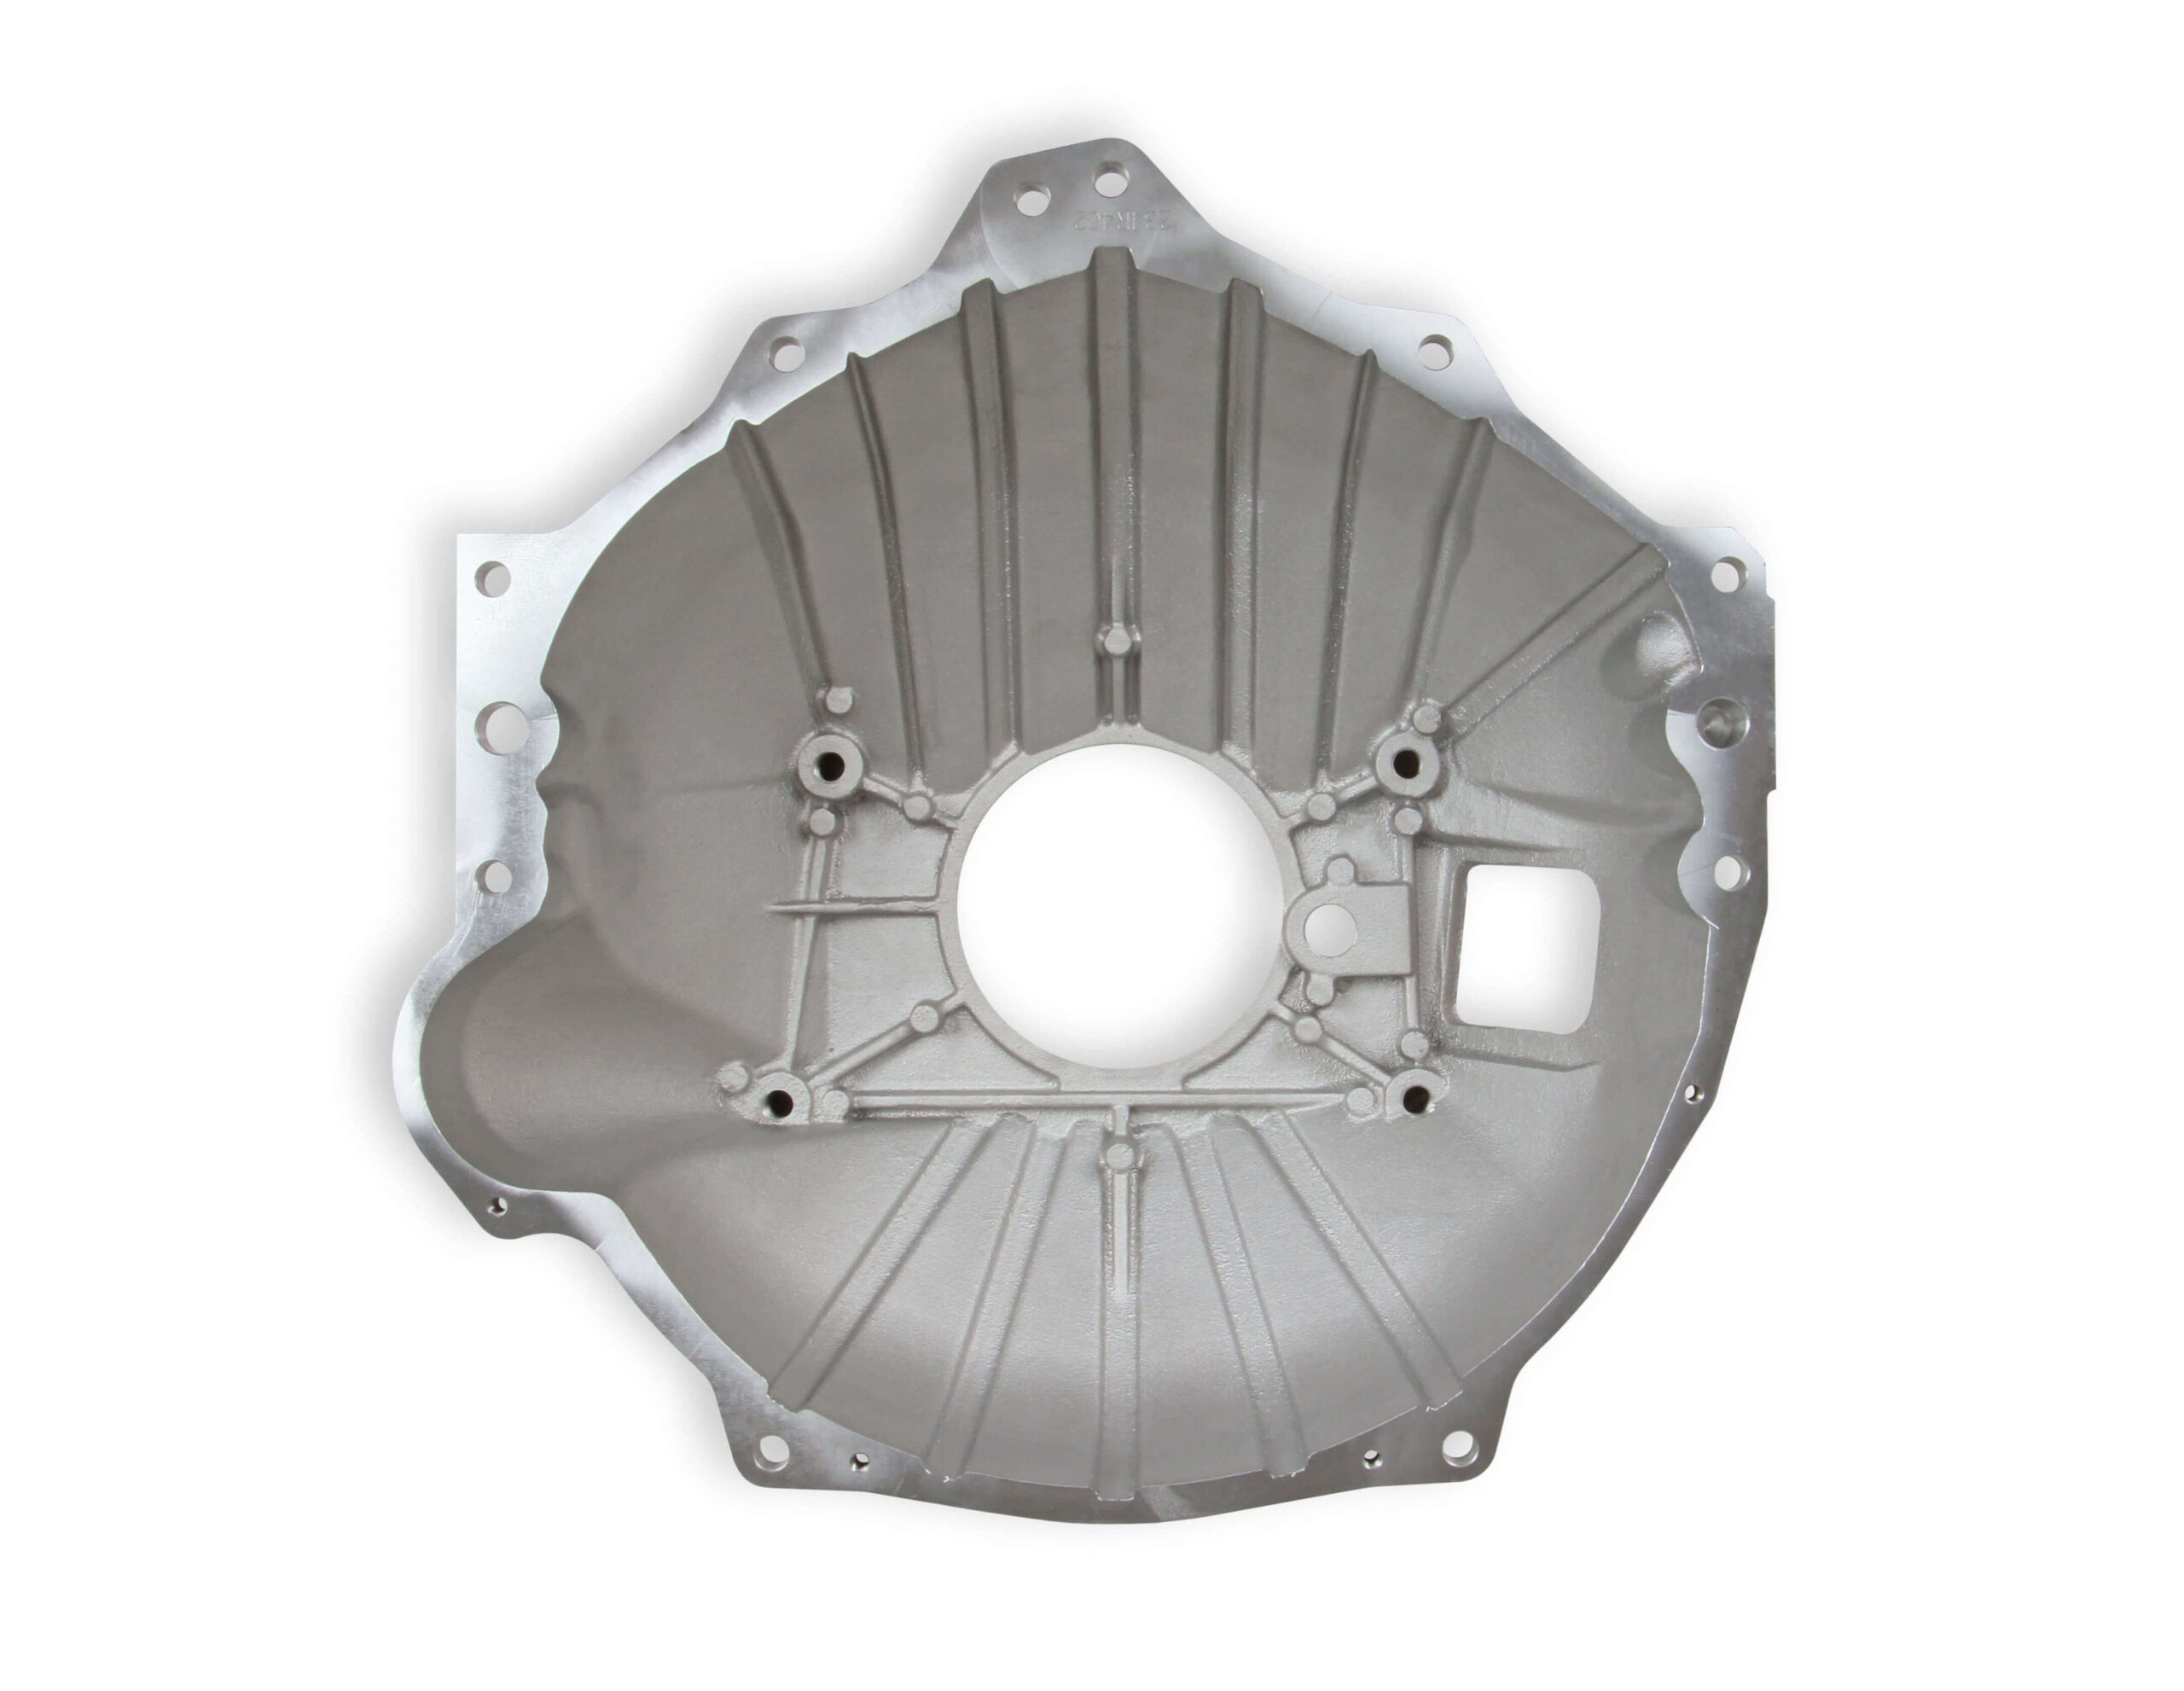 Holley Performance Products Cast Aluminum Bellhousing Kits for Chevy Big and Small Block Engines